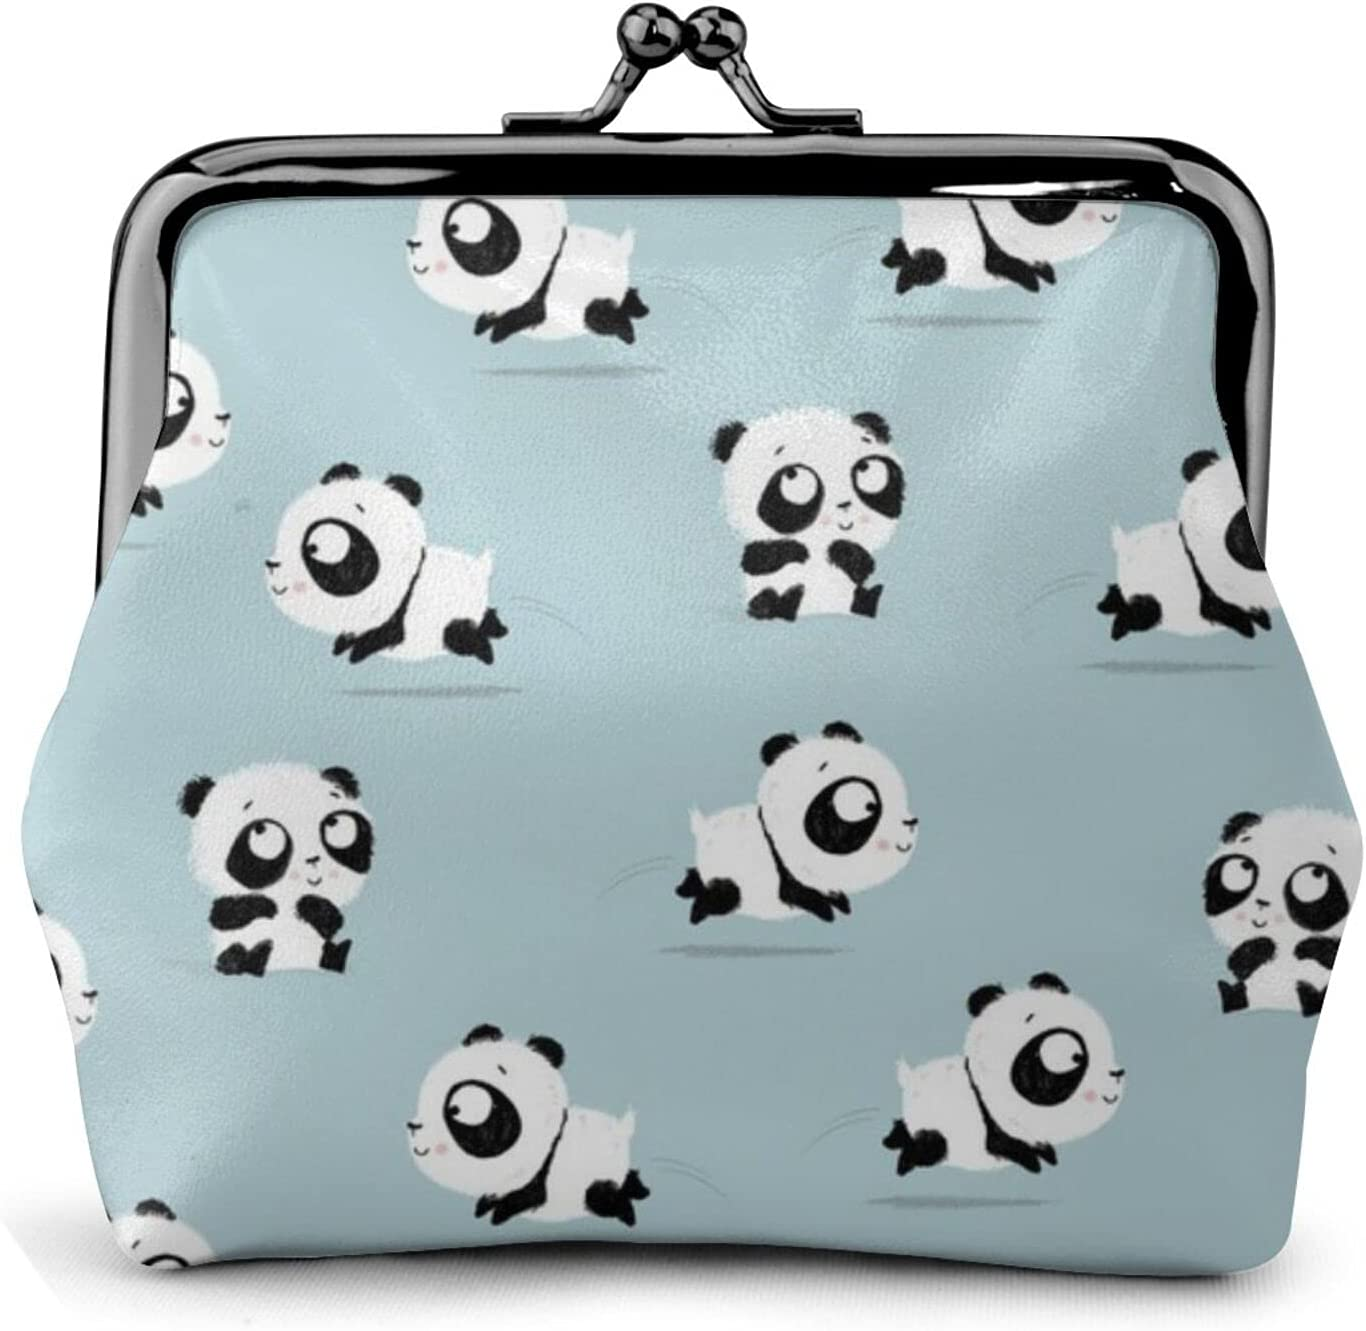 Cute Panda Pattern 1904 Leather Coin Purse Kiss Lock Change Pouch Vintage Clasp Closure Buckle Wallet Small Women Gift